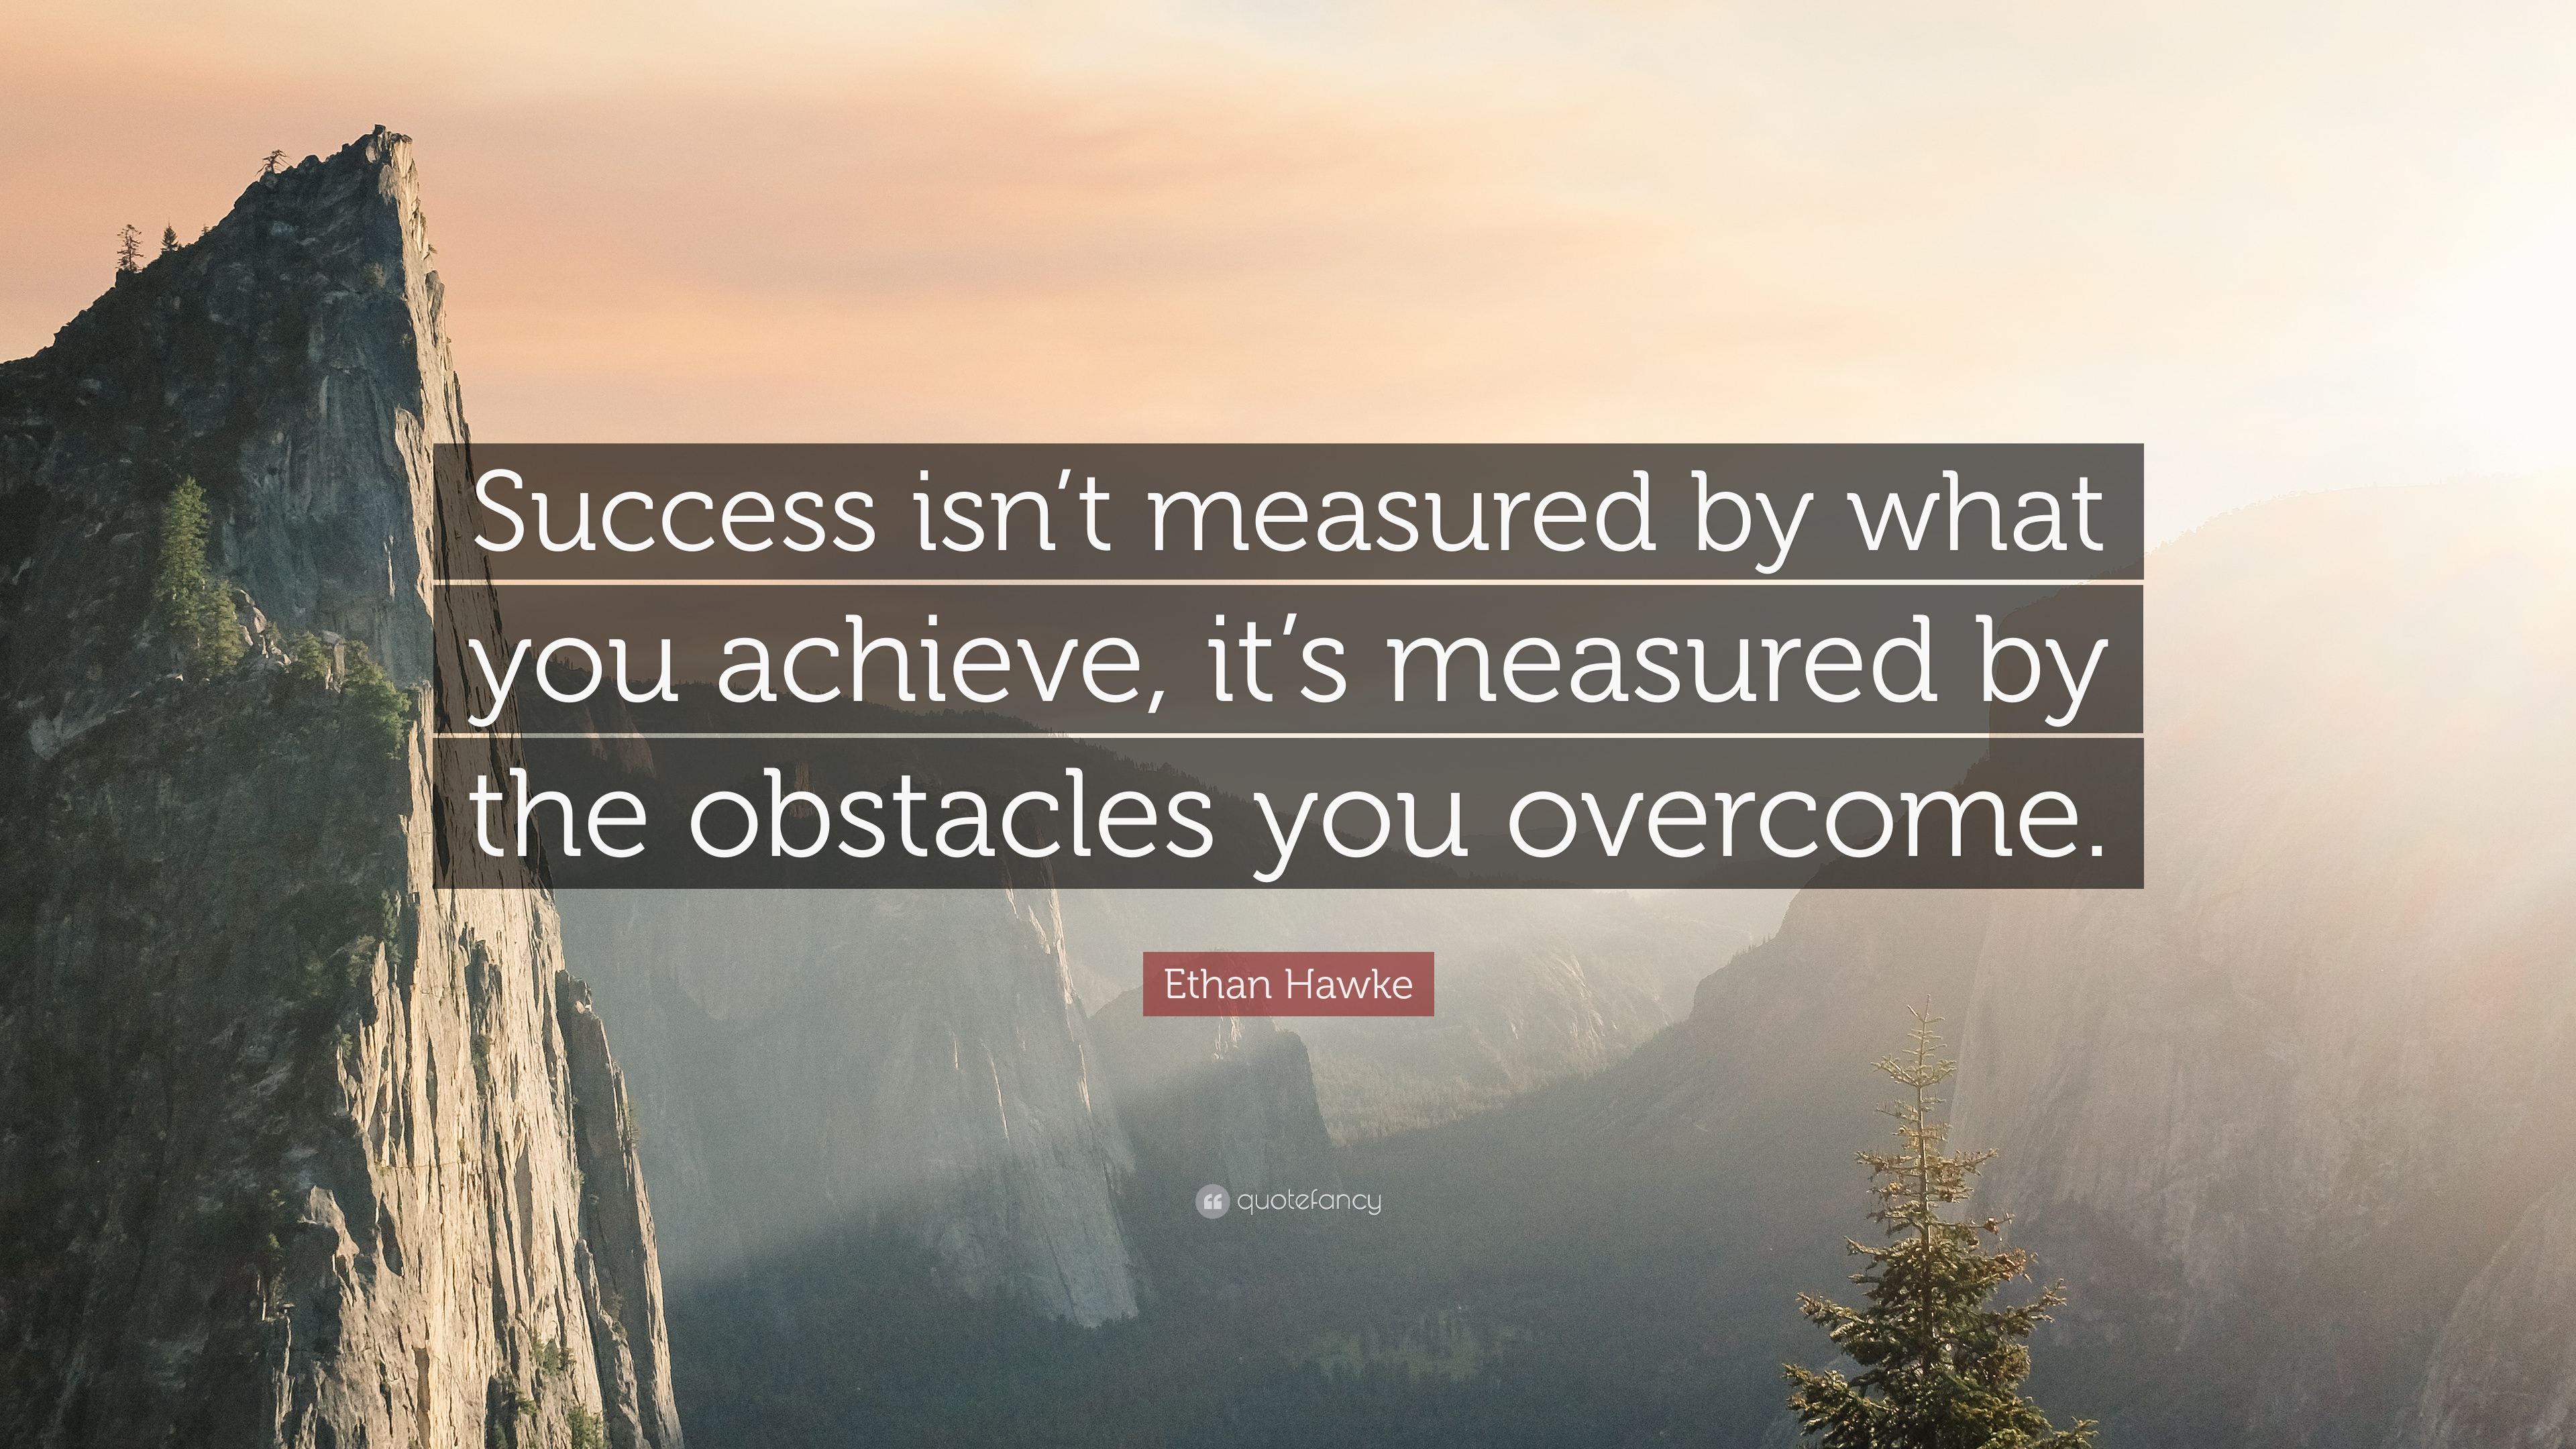 Ethan Hawke Quote: Success isnt measured by what you